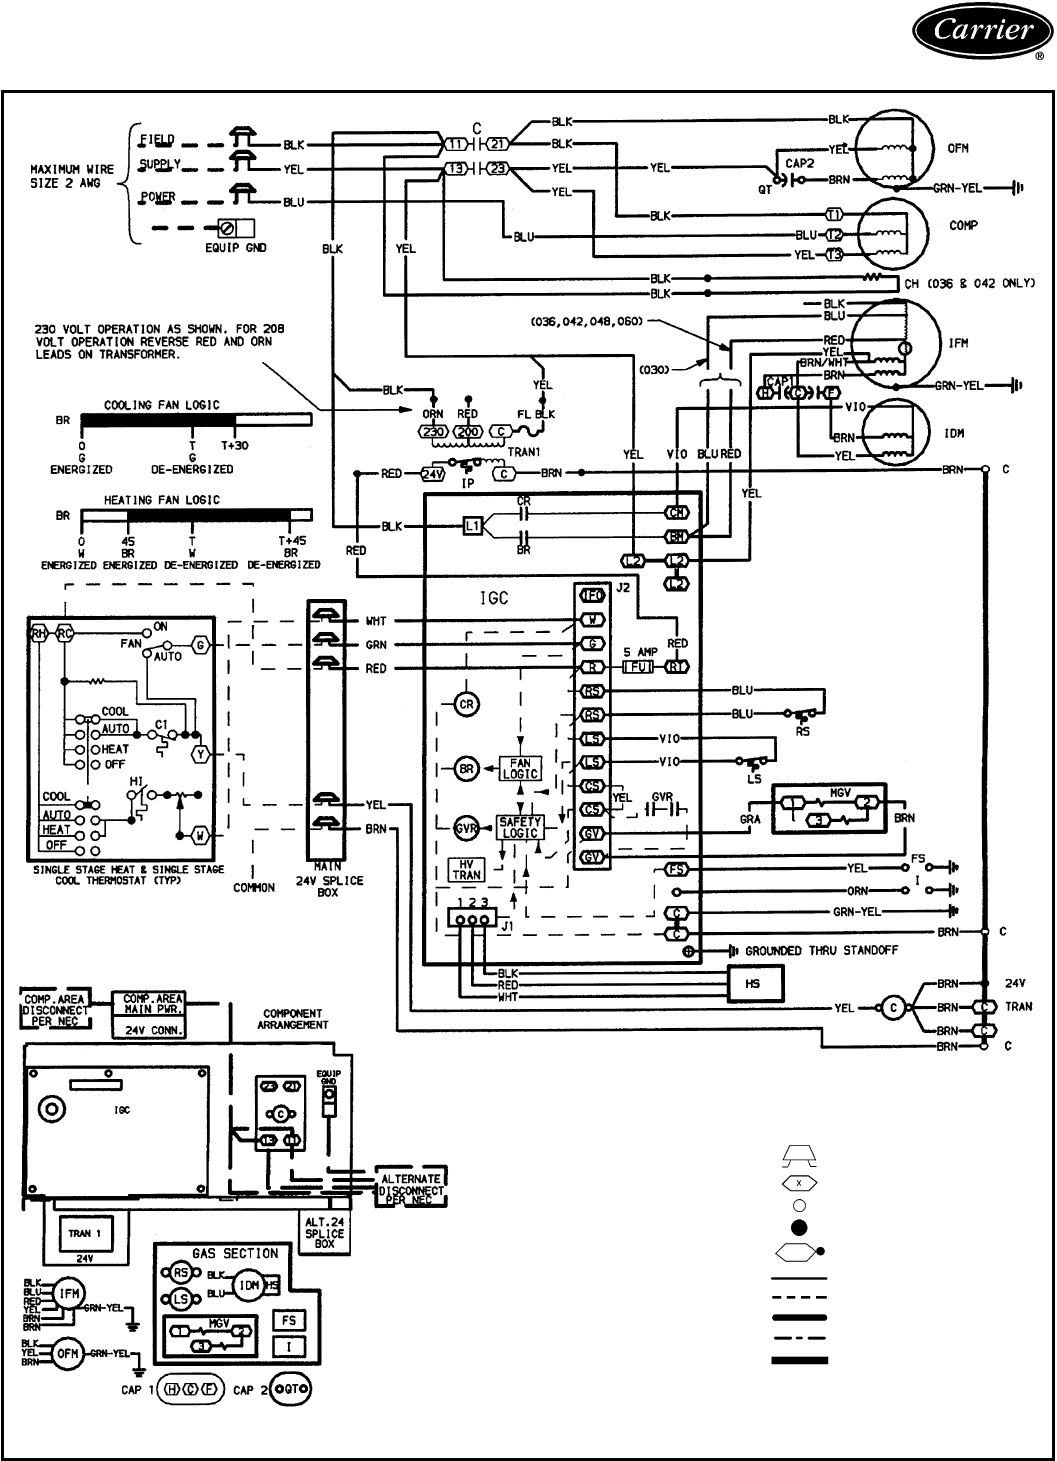 carrier furnace wiring diagram Download-Carrier Furnace Wiring Diagram Download 9-a